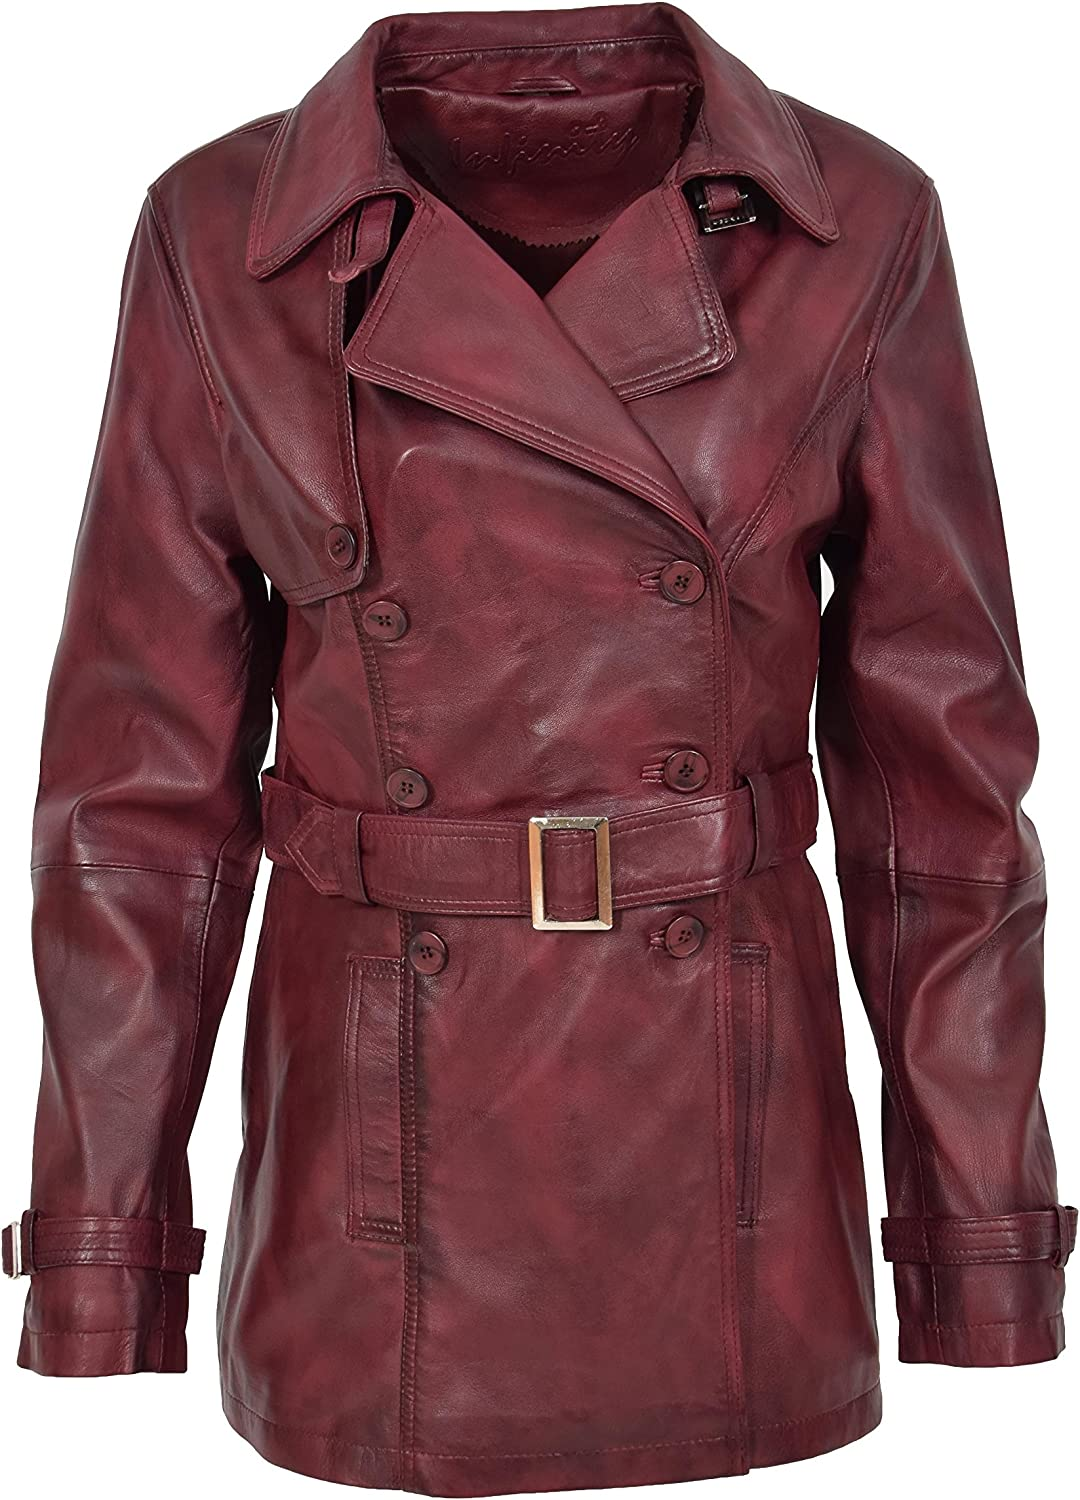 HOL Ladies Real Leather Double Breasted Trench Coat Fitted Style Sienna Burgundy